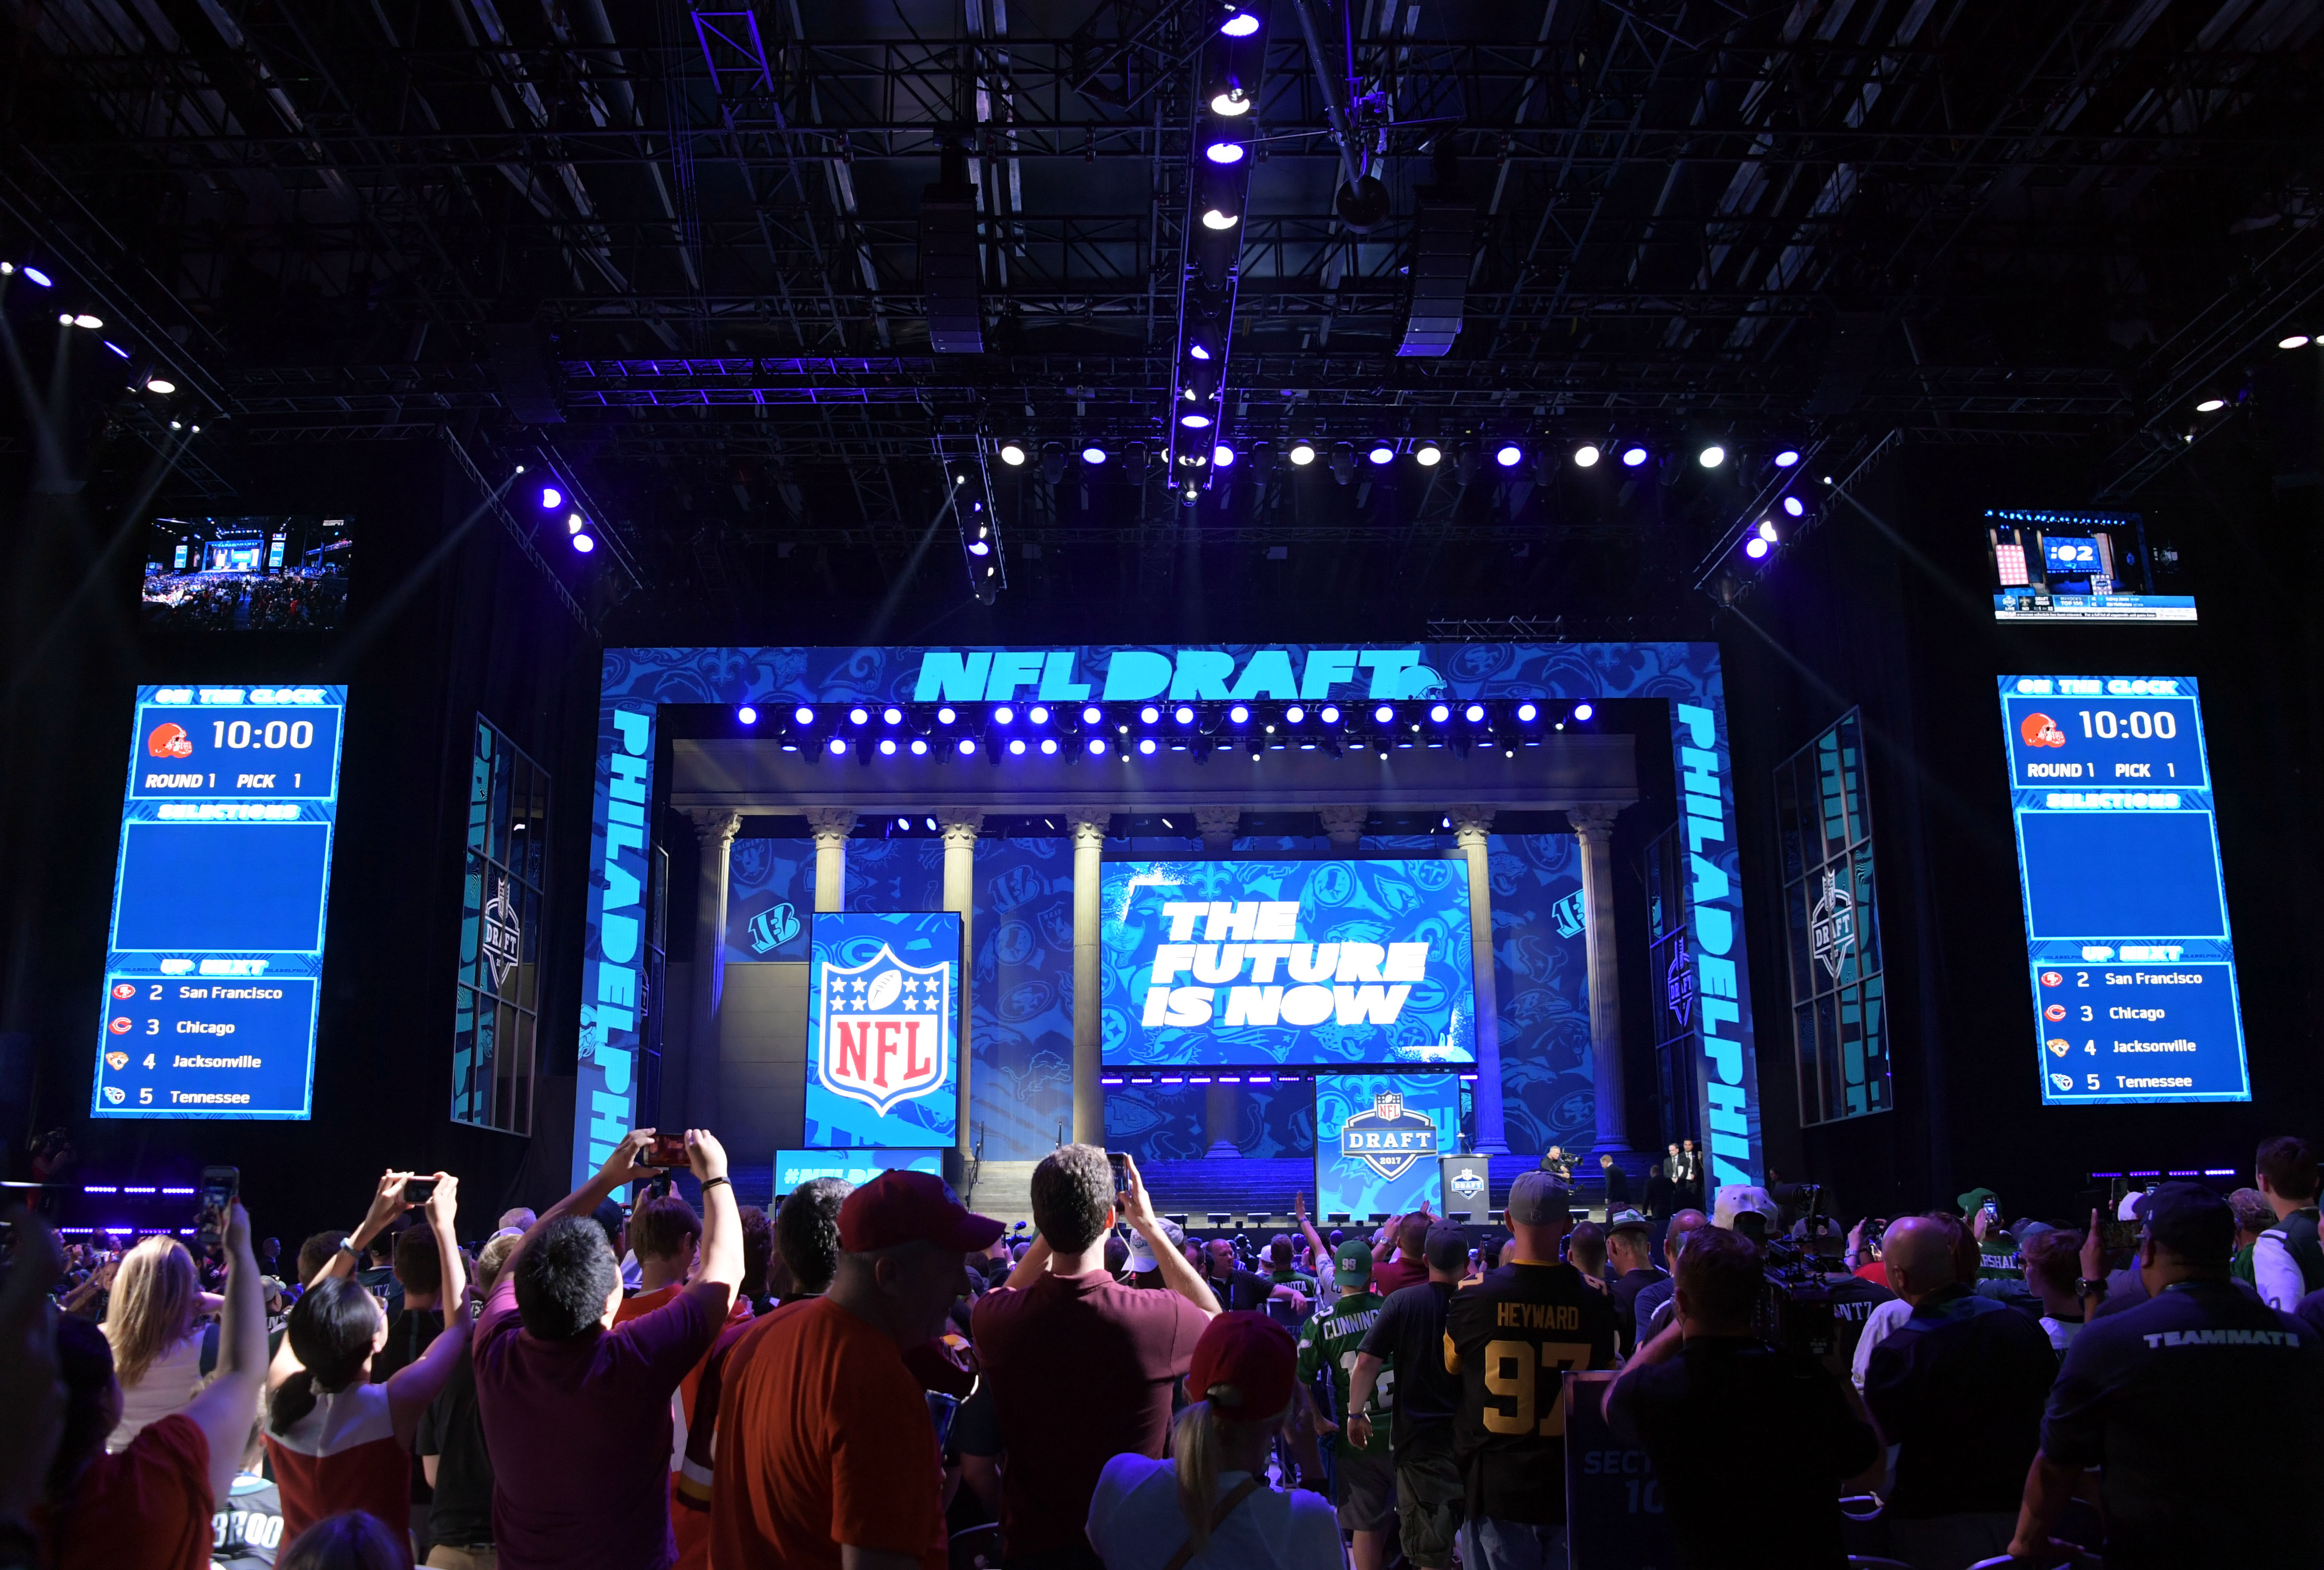 PHILADELPHIA, PA - The crowd waits for picks to be announced at the 2017 NFL Draft at the Philadelphia Museum of Art.